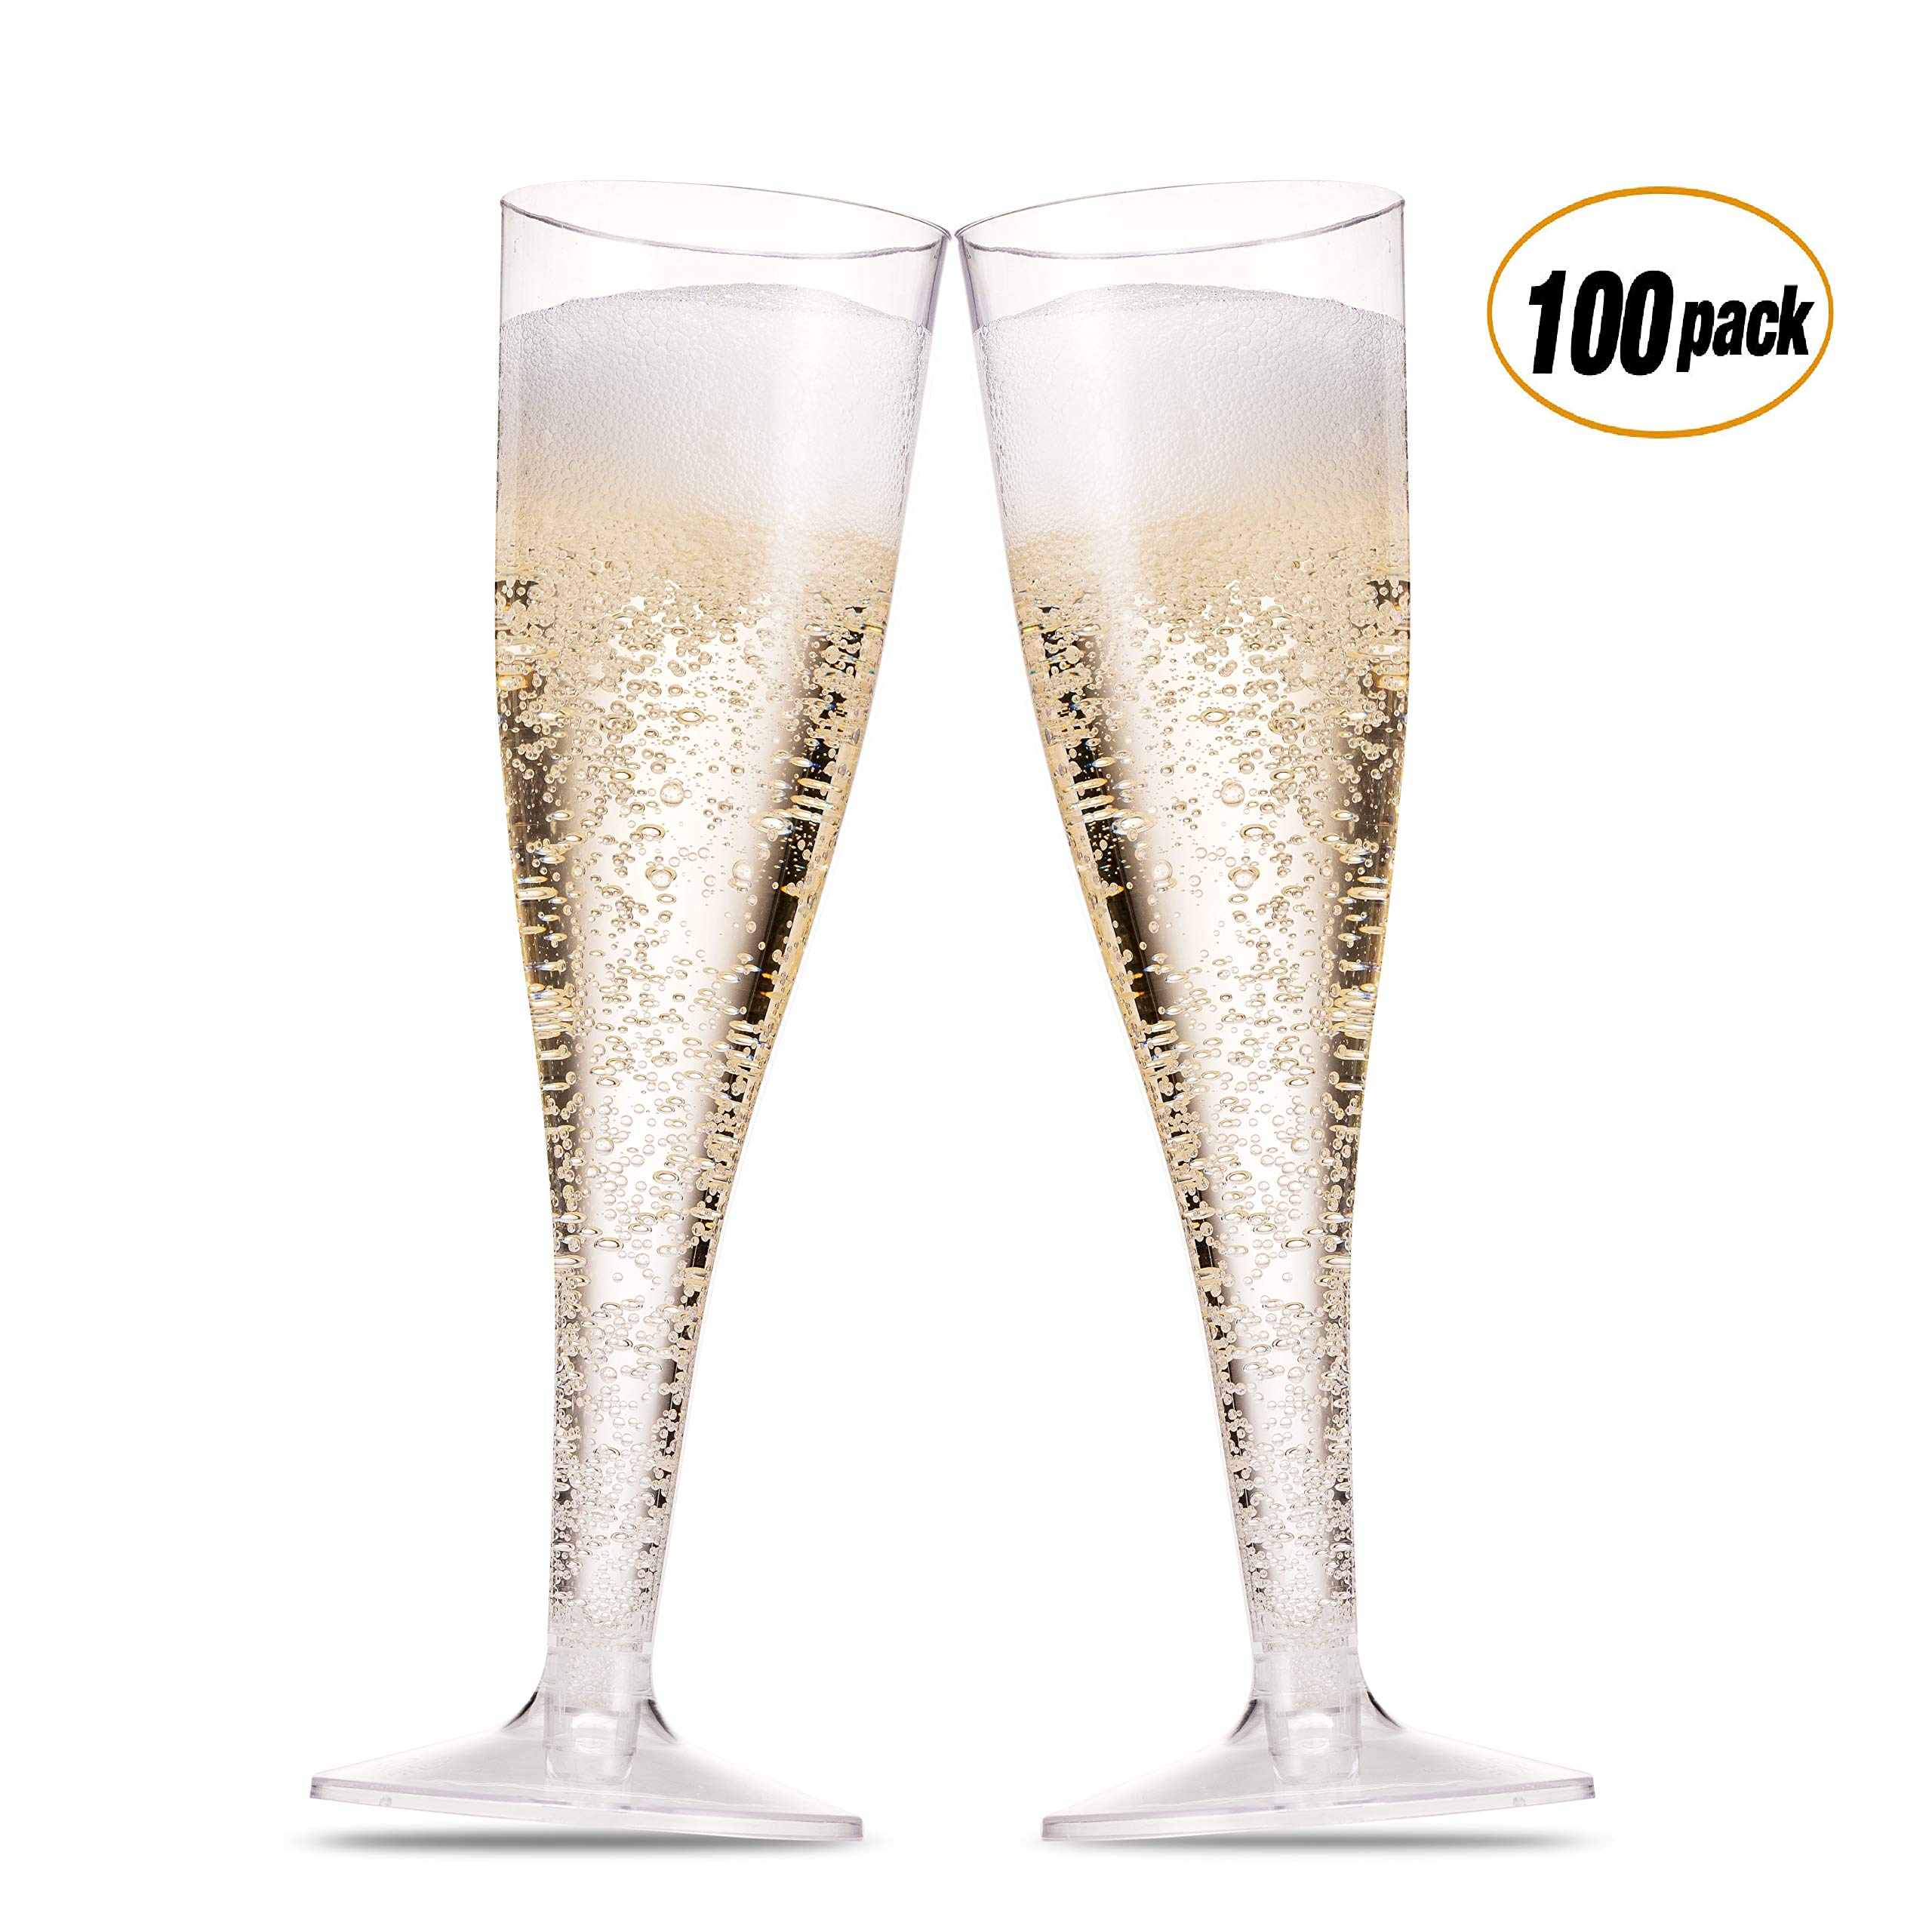 100 Pack Plastic Champagne Flutes ~ 5 Oz Clear Plastic Toasting Glasses ~ Disposable Wedding Thanksgiving Party Cocktail Cups